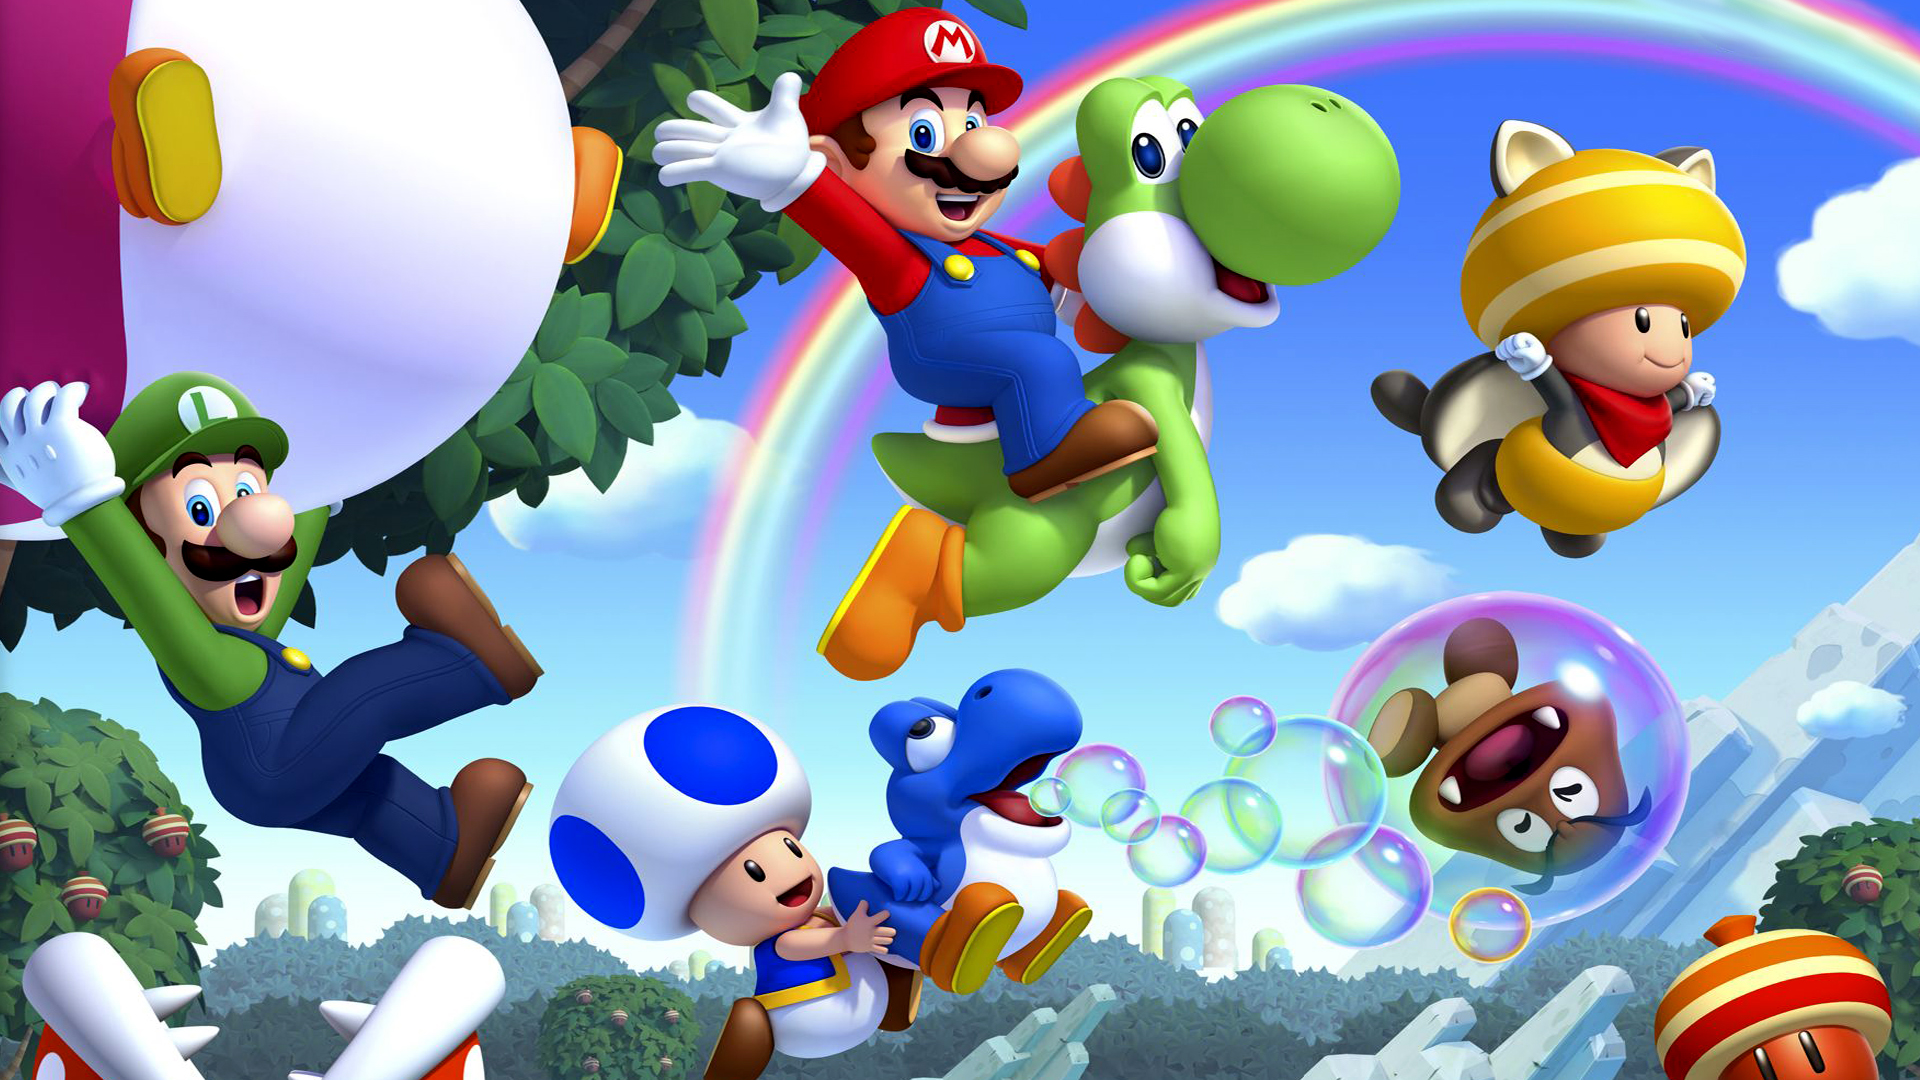 Best 27 Mario Background 1080p On Hipwallpaper Mario Wallpaper Mario Iphone Wallpaper And Funny Mario Wallpapers